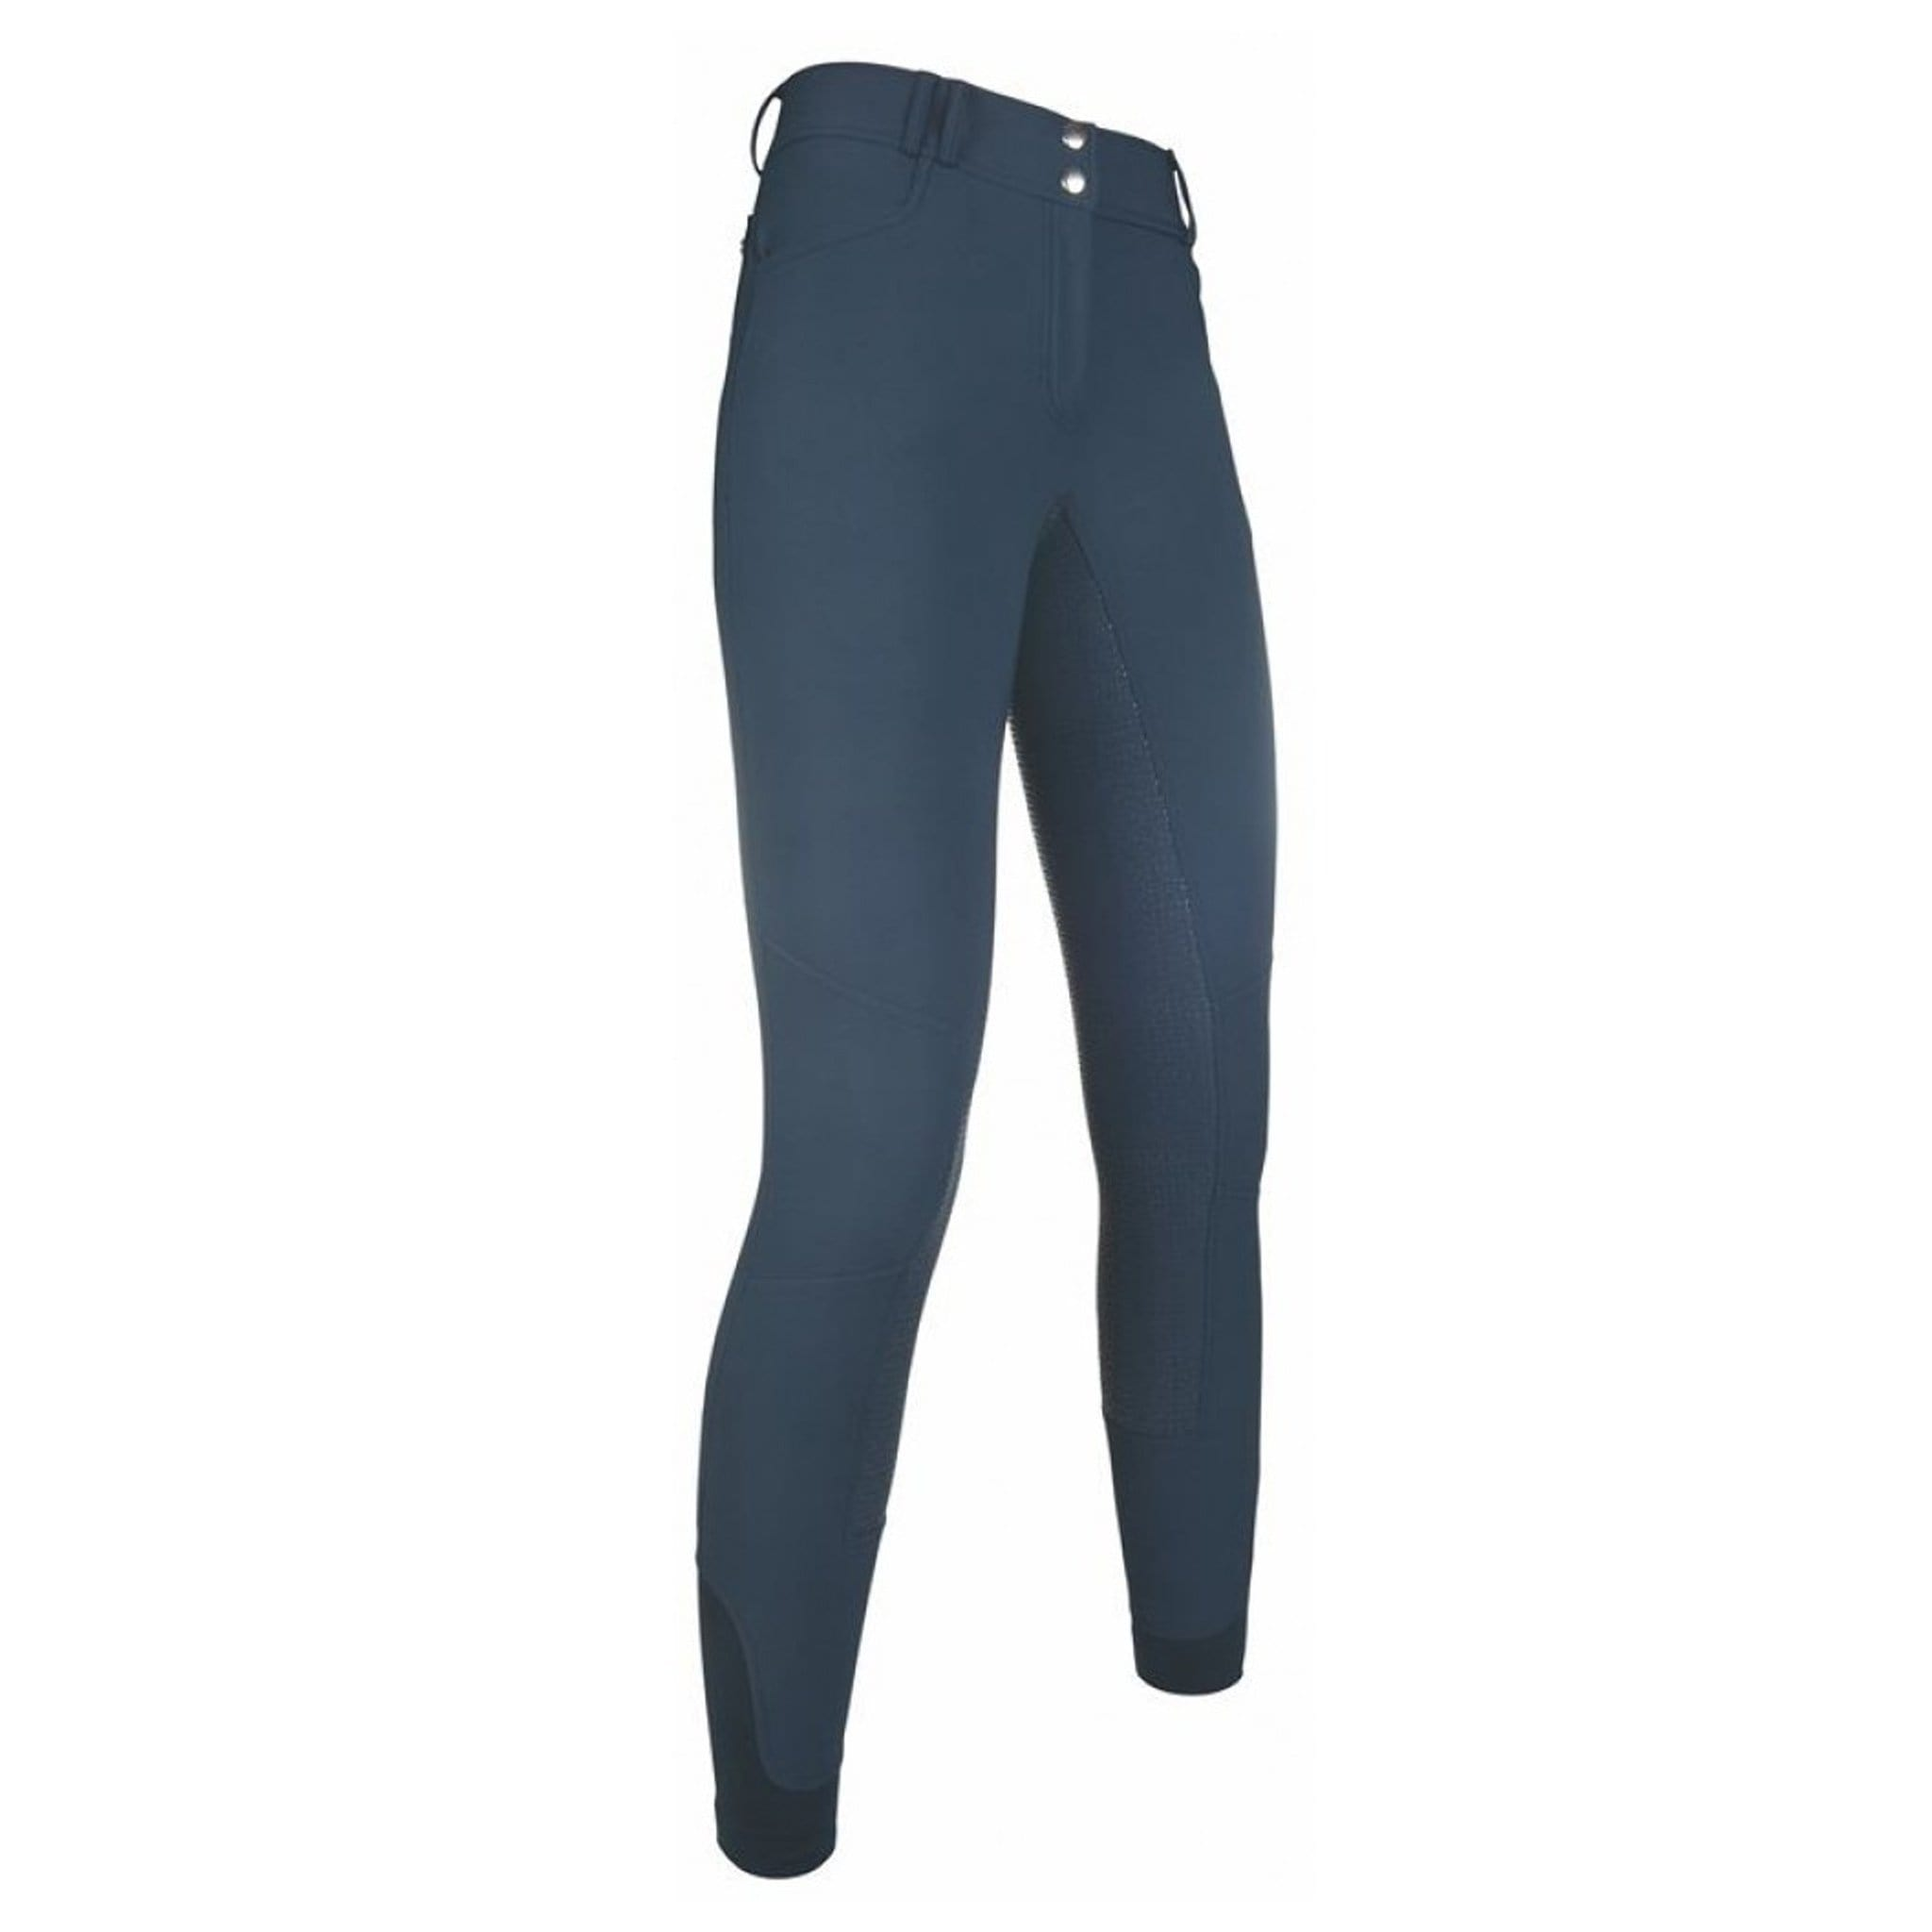 HKM Armonia Softshell Silicone Full Seat Breeches 9244 Navy Deep Blue Front View